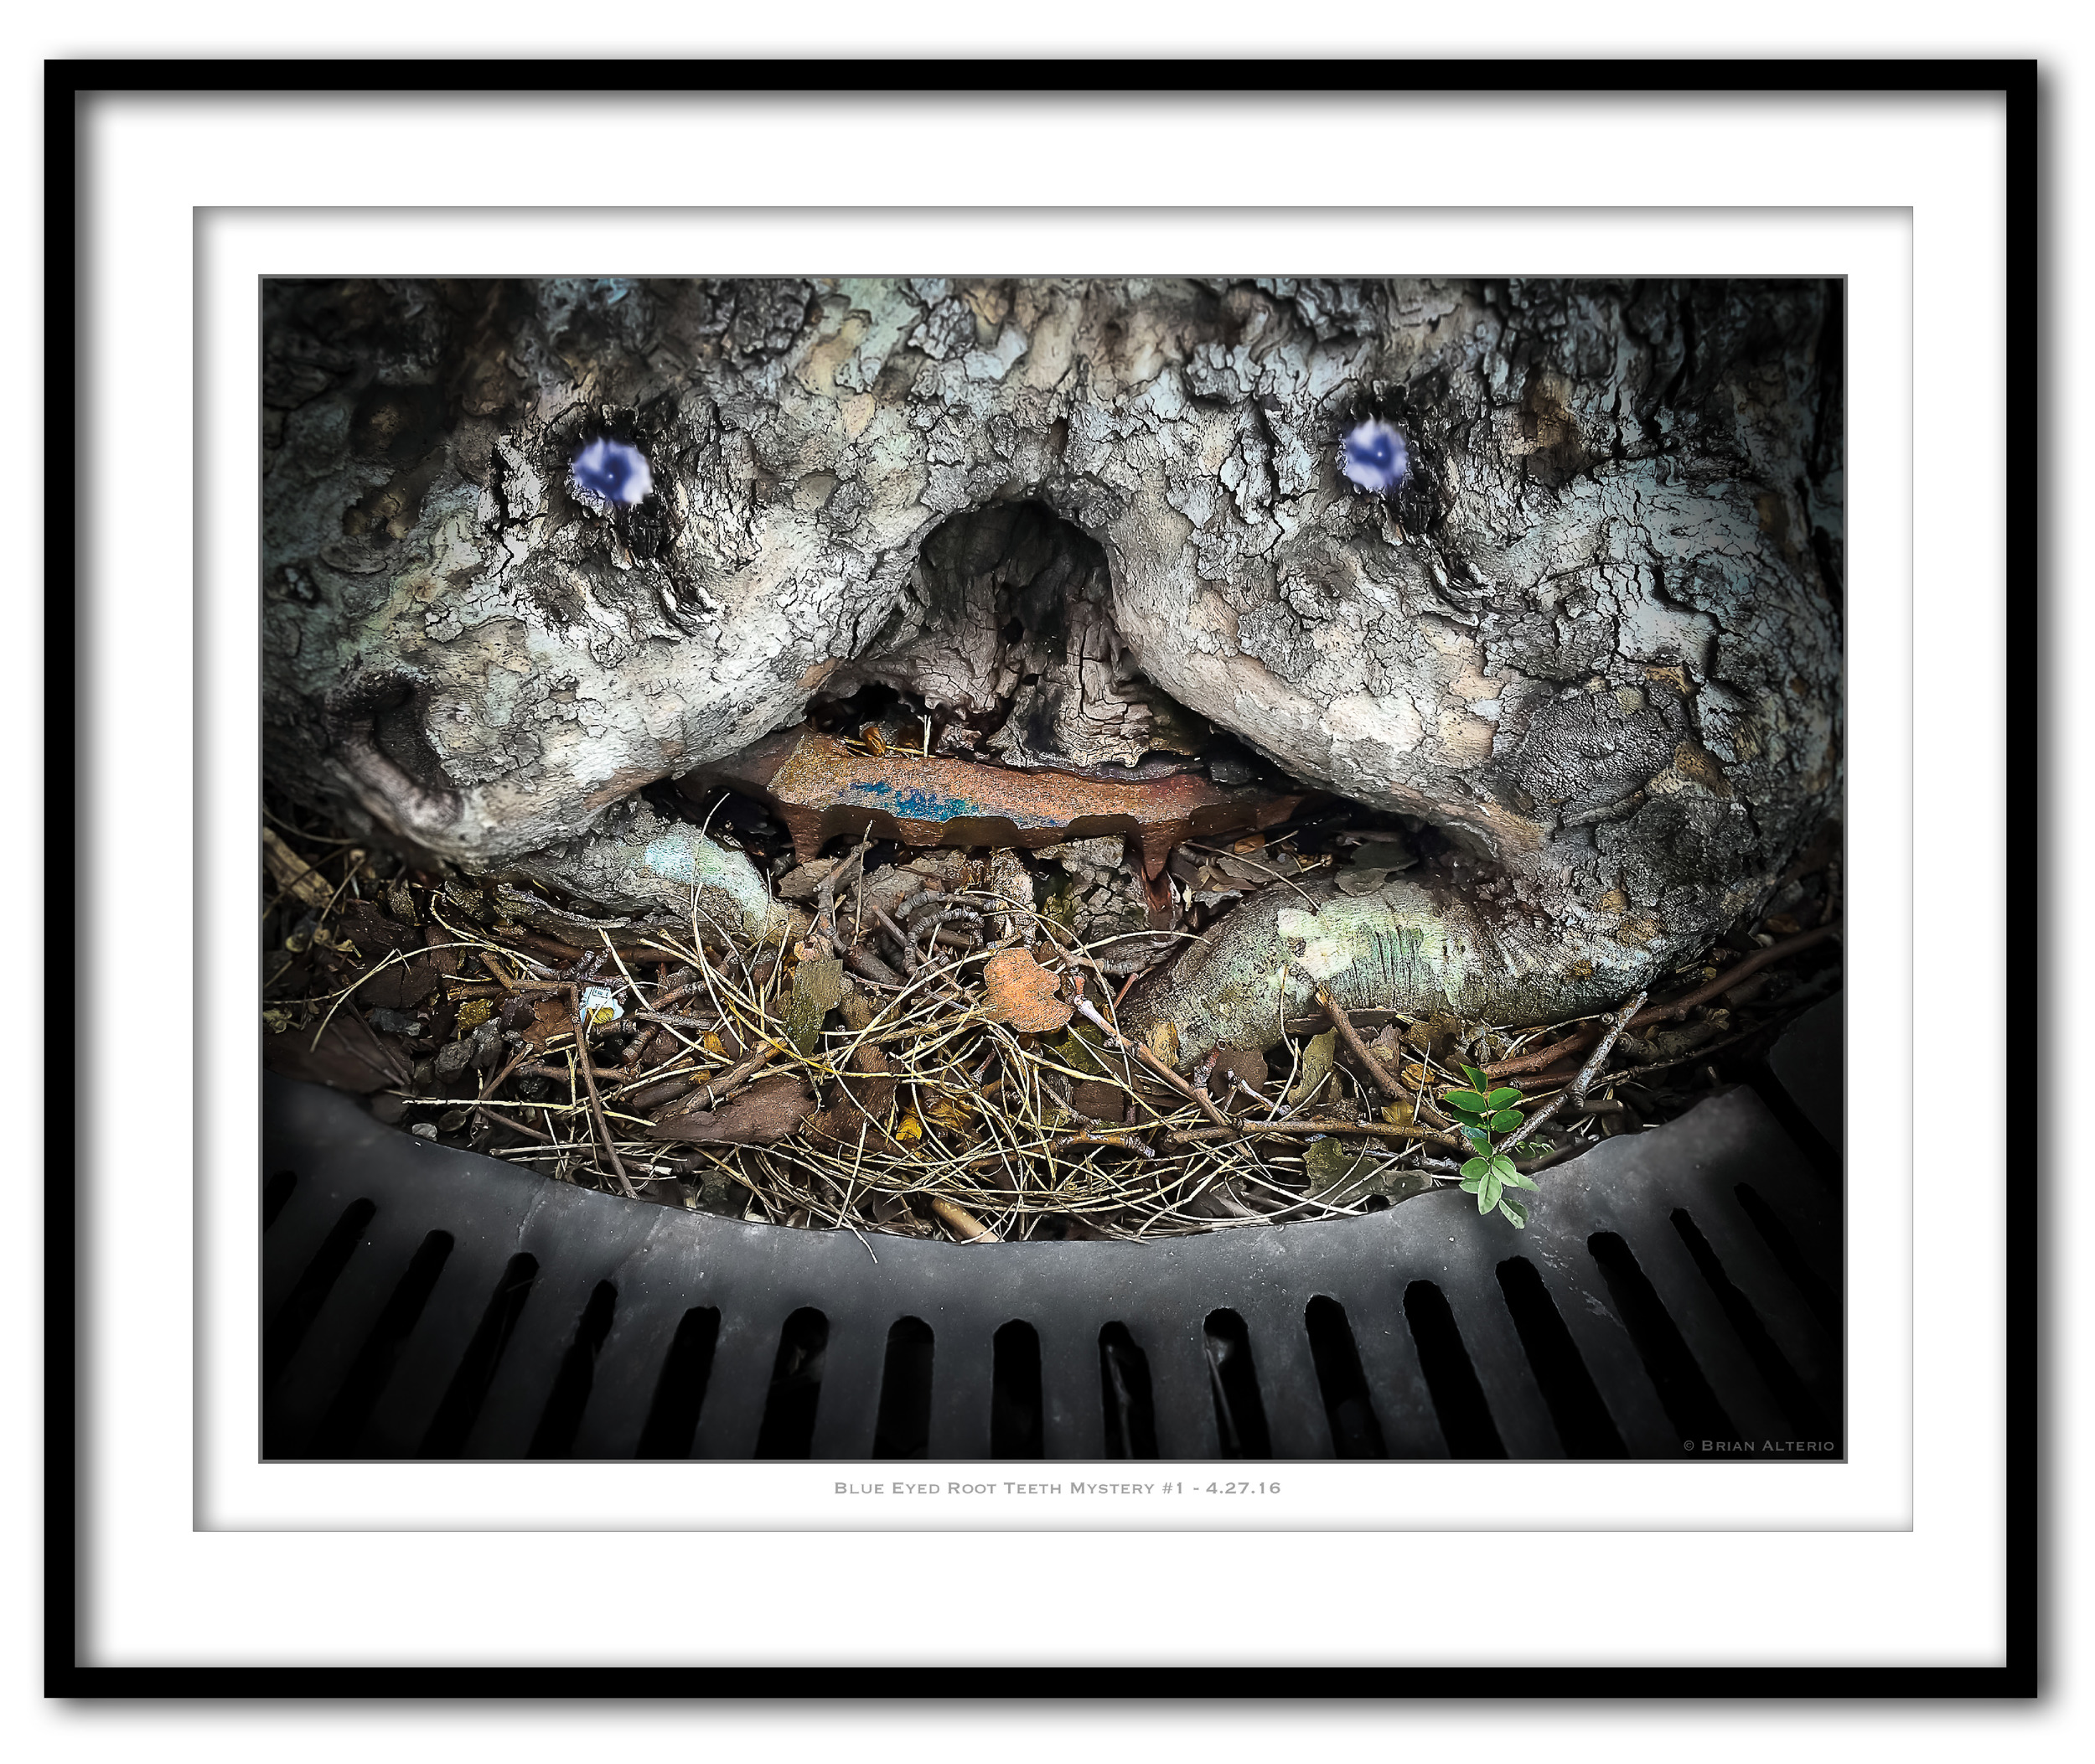 Blue Eyed Root Teeth Mystery #1 - 4.27.16- Framed.jpg